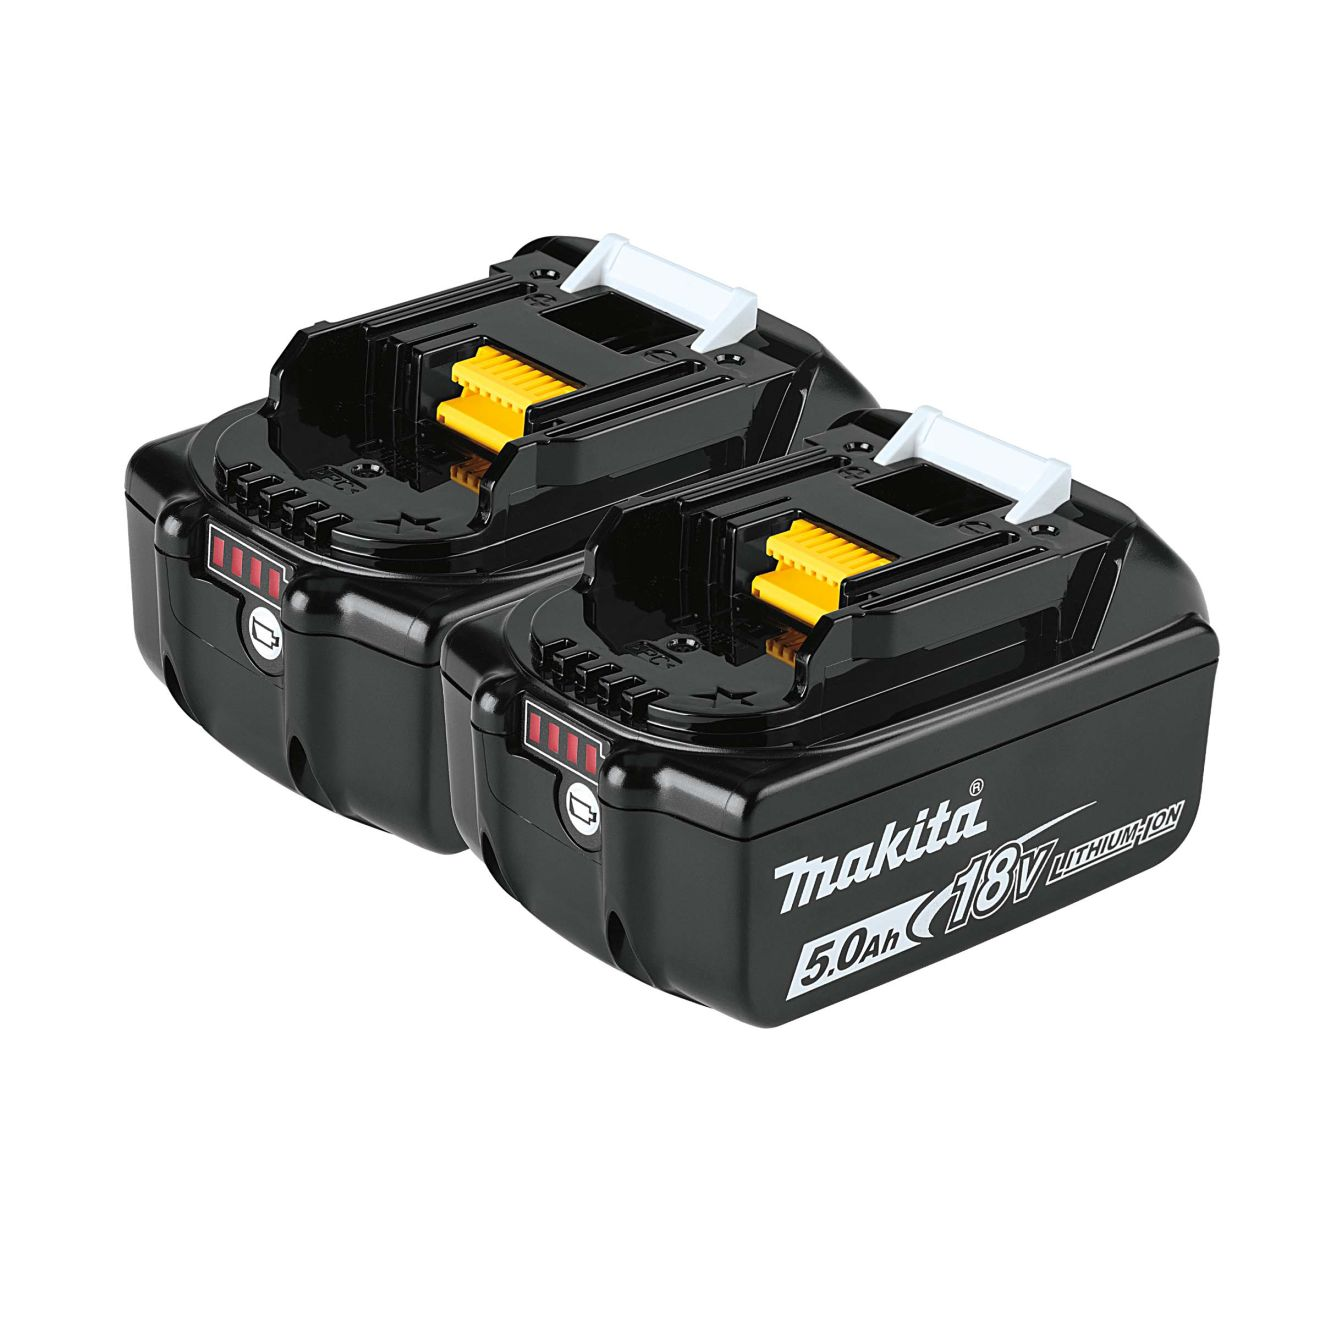 Makita 18-Vold LXT Lithium-Ion 5.0 Ah Battery Pack (2-Pack)